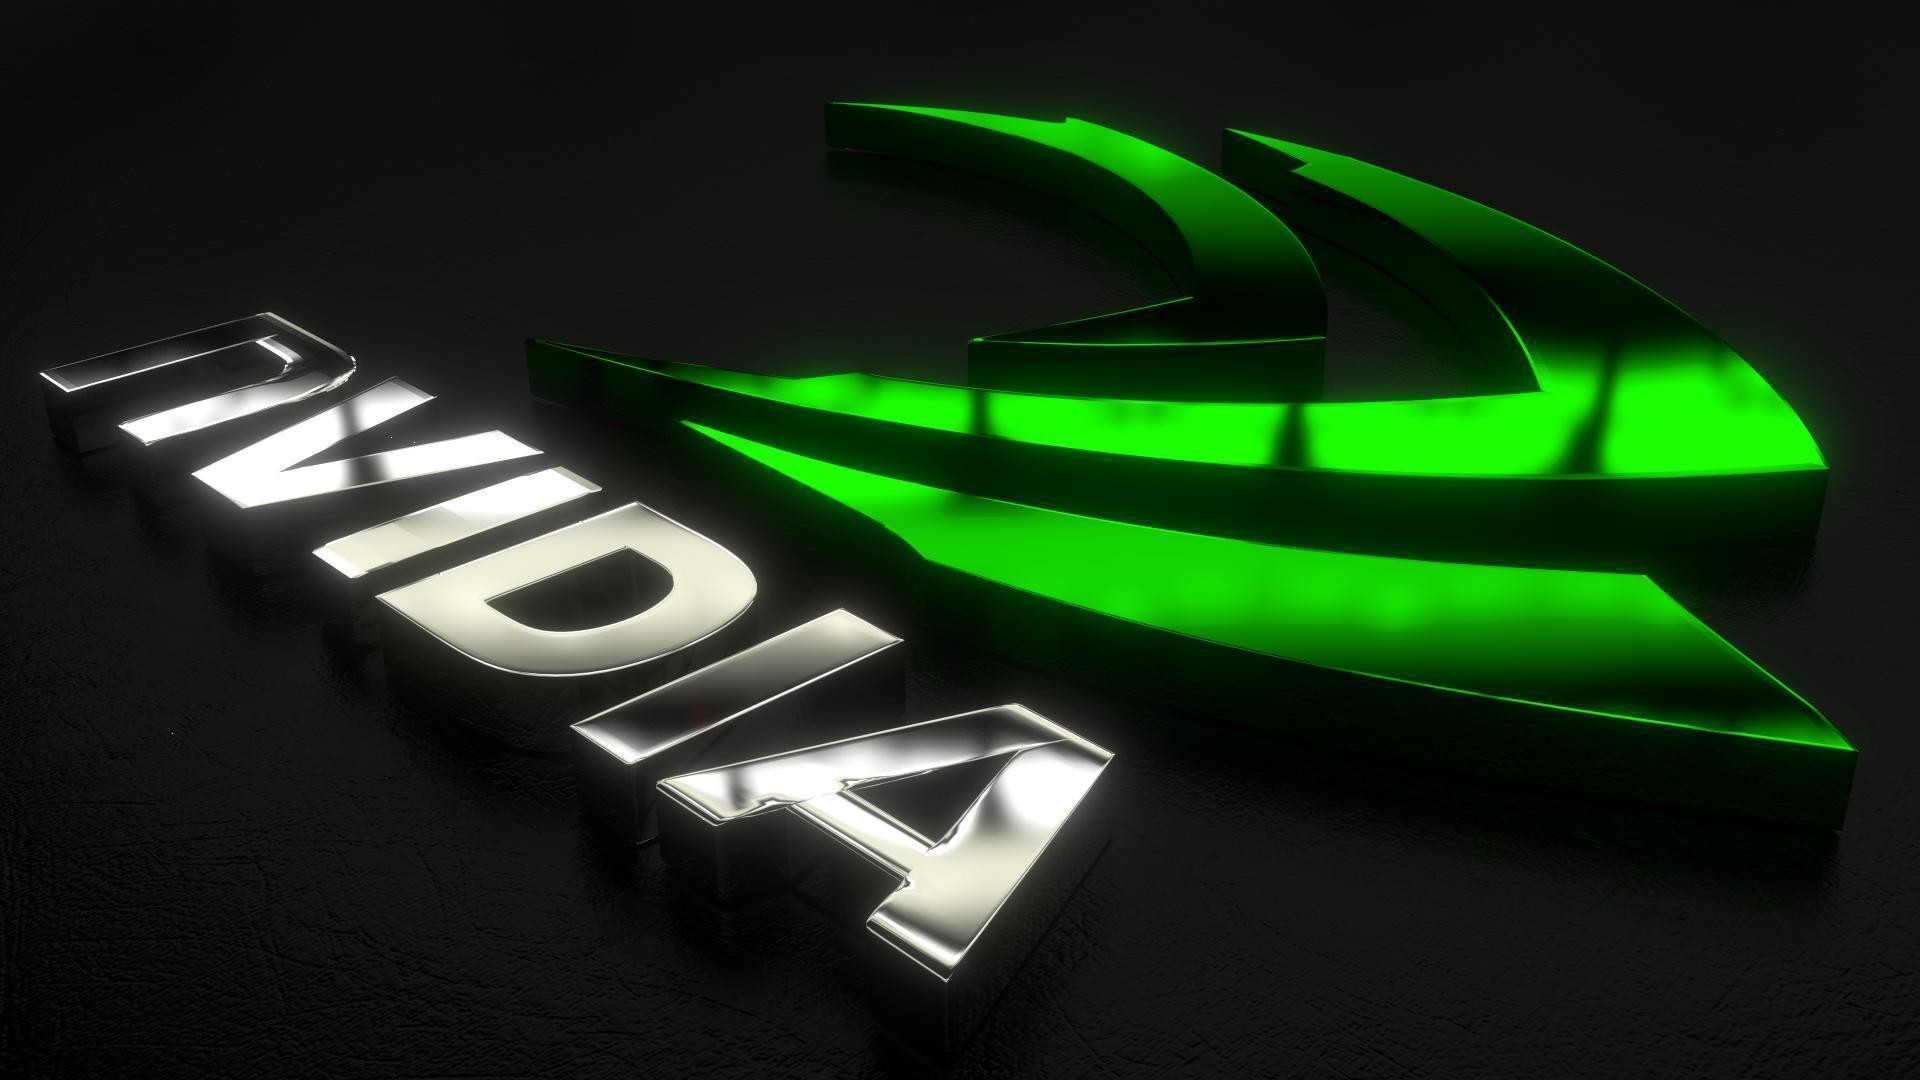 Nvidia Wallpapers 4k 72 Images